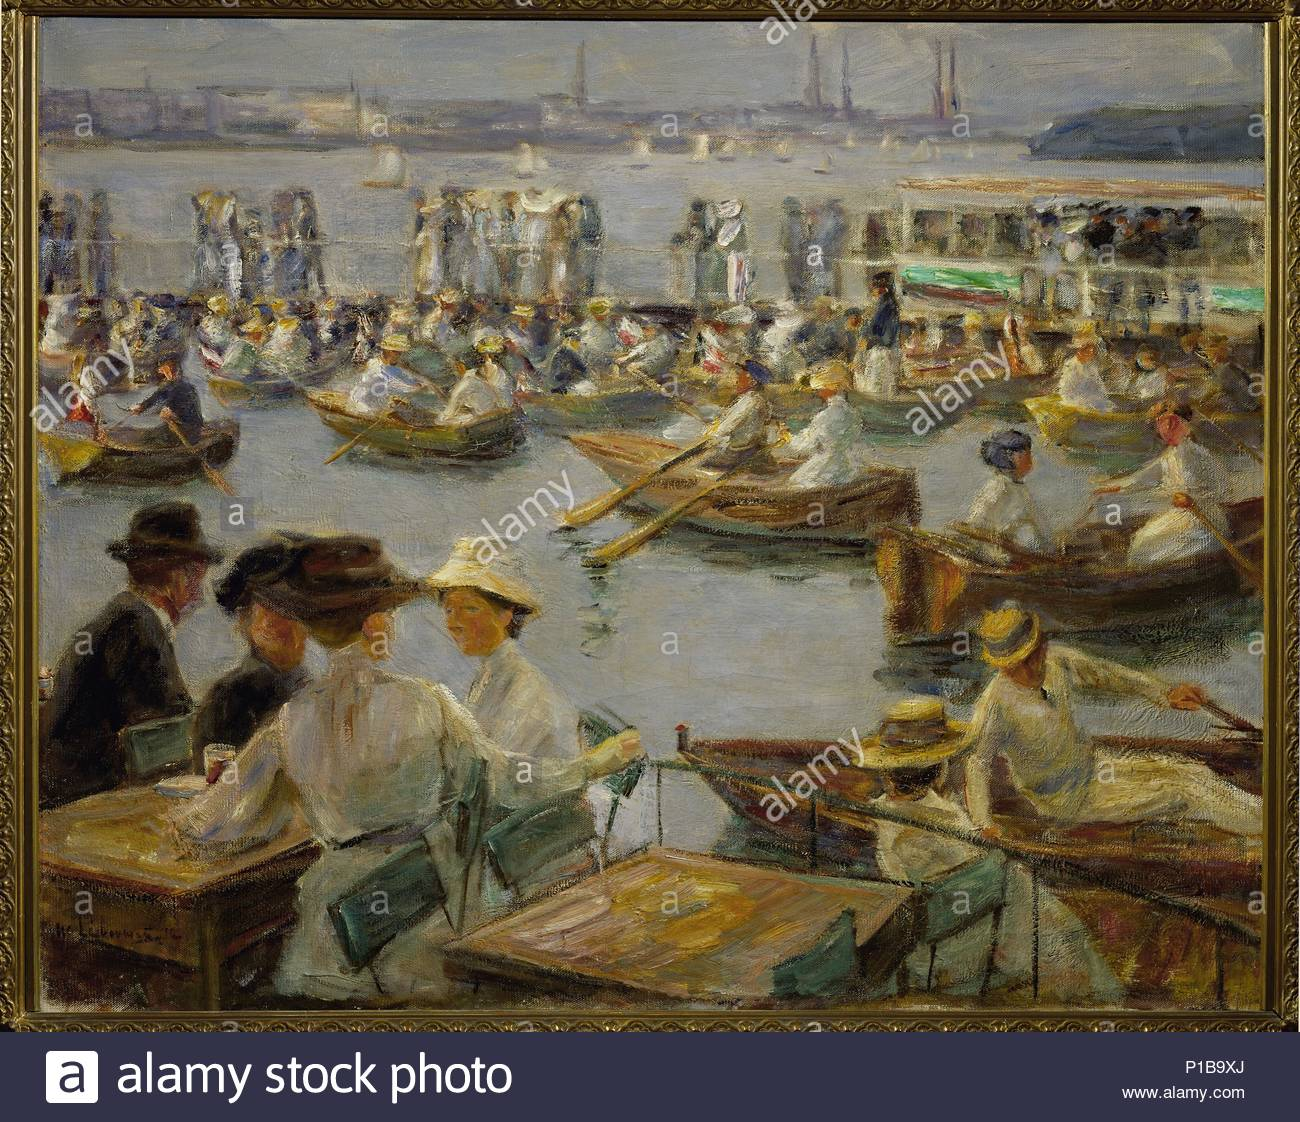 On the shores of the Alster, Hamburg, 1910 Canvas, 85,5 x 104 cm Inv.2457A. Author: Max Liebermann (1847-1935). Location: Staatl. Kunstsammlungen, Neue Meister, Dresden, Germany. - Stock Image